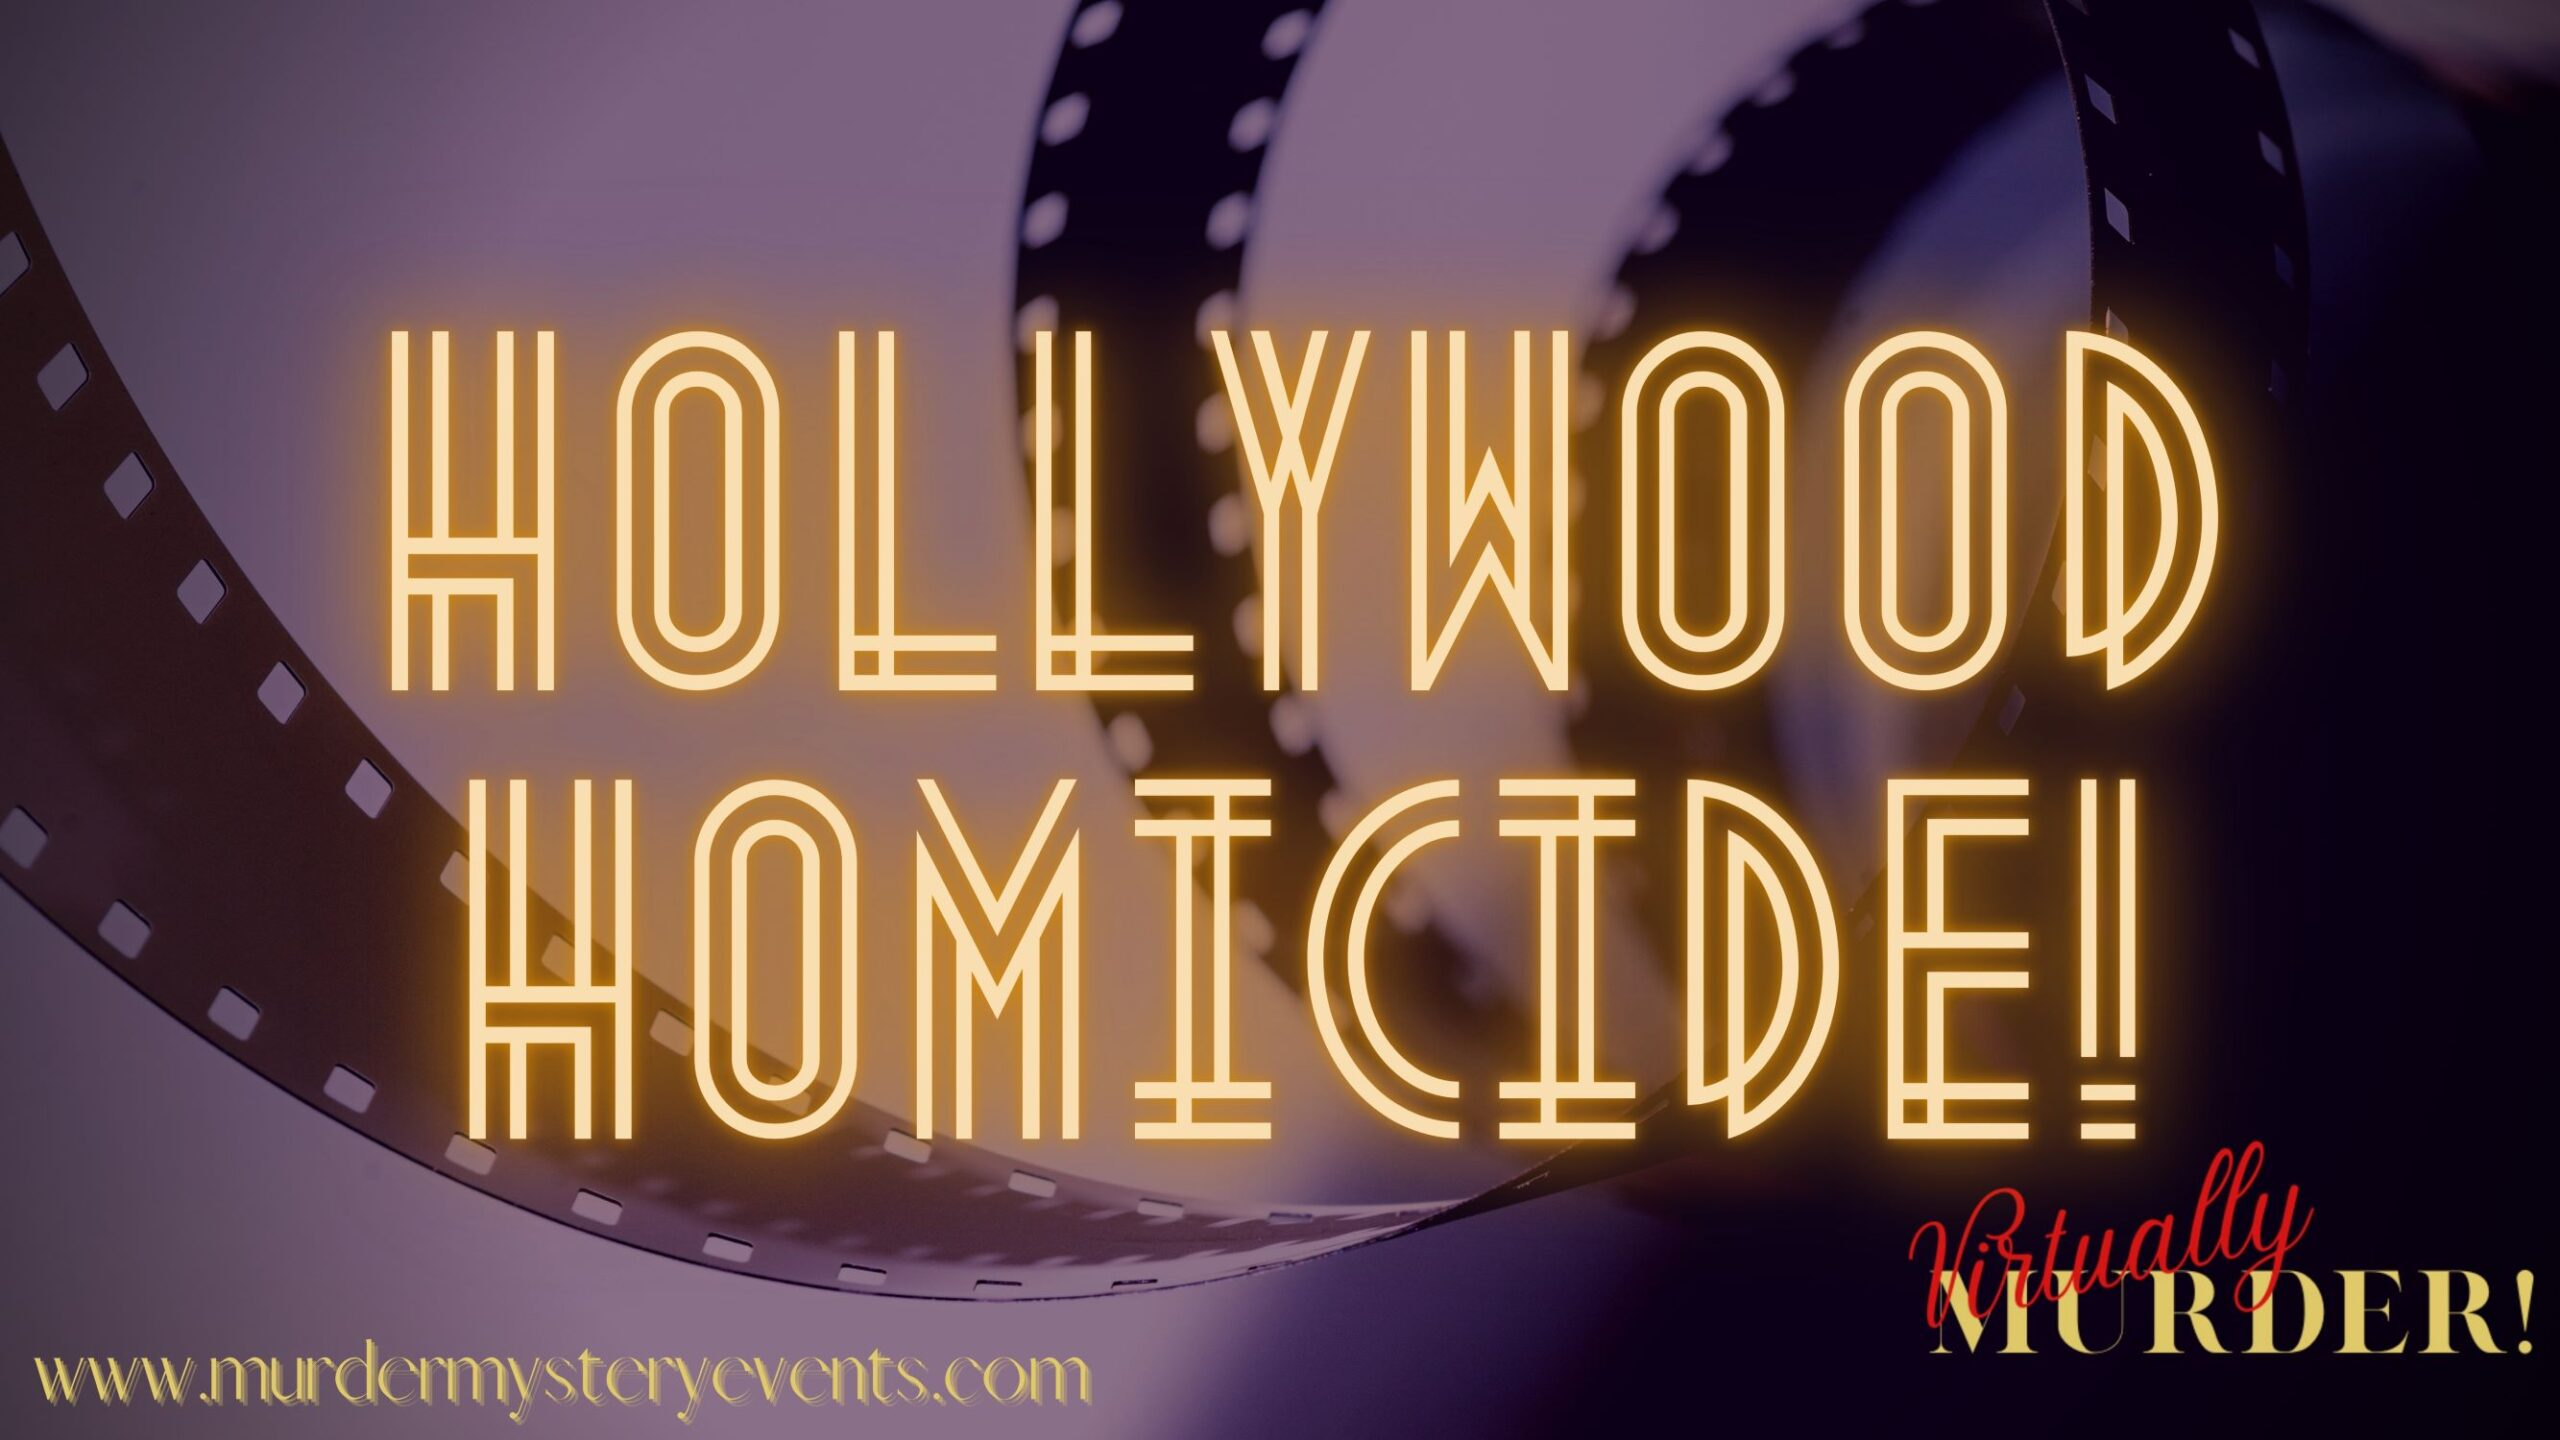 Hollywood Homicide Online Murder Mystery